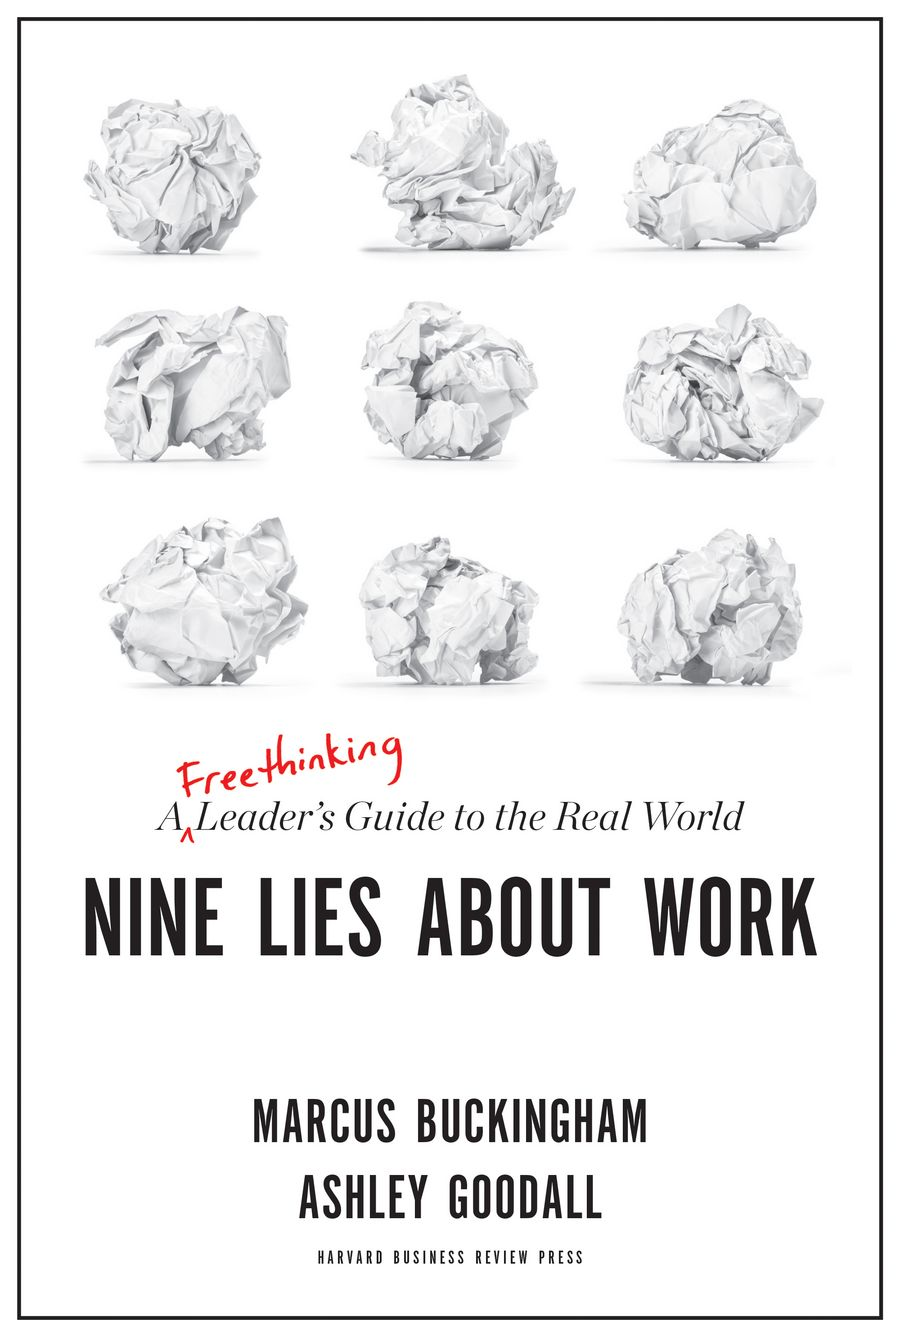 Marcus Buckingham - Nine lies about work